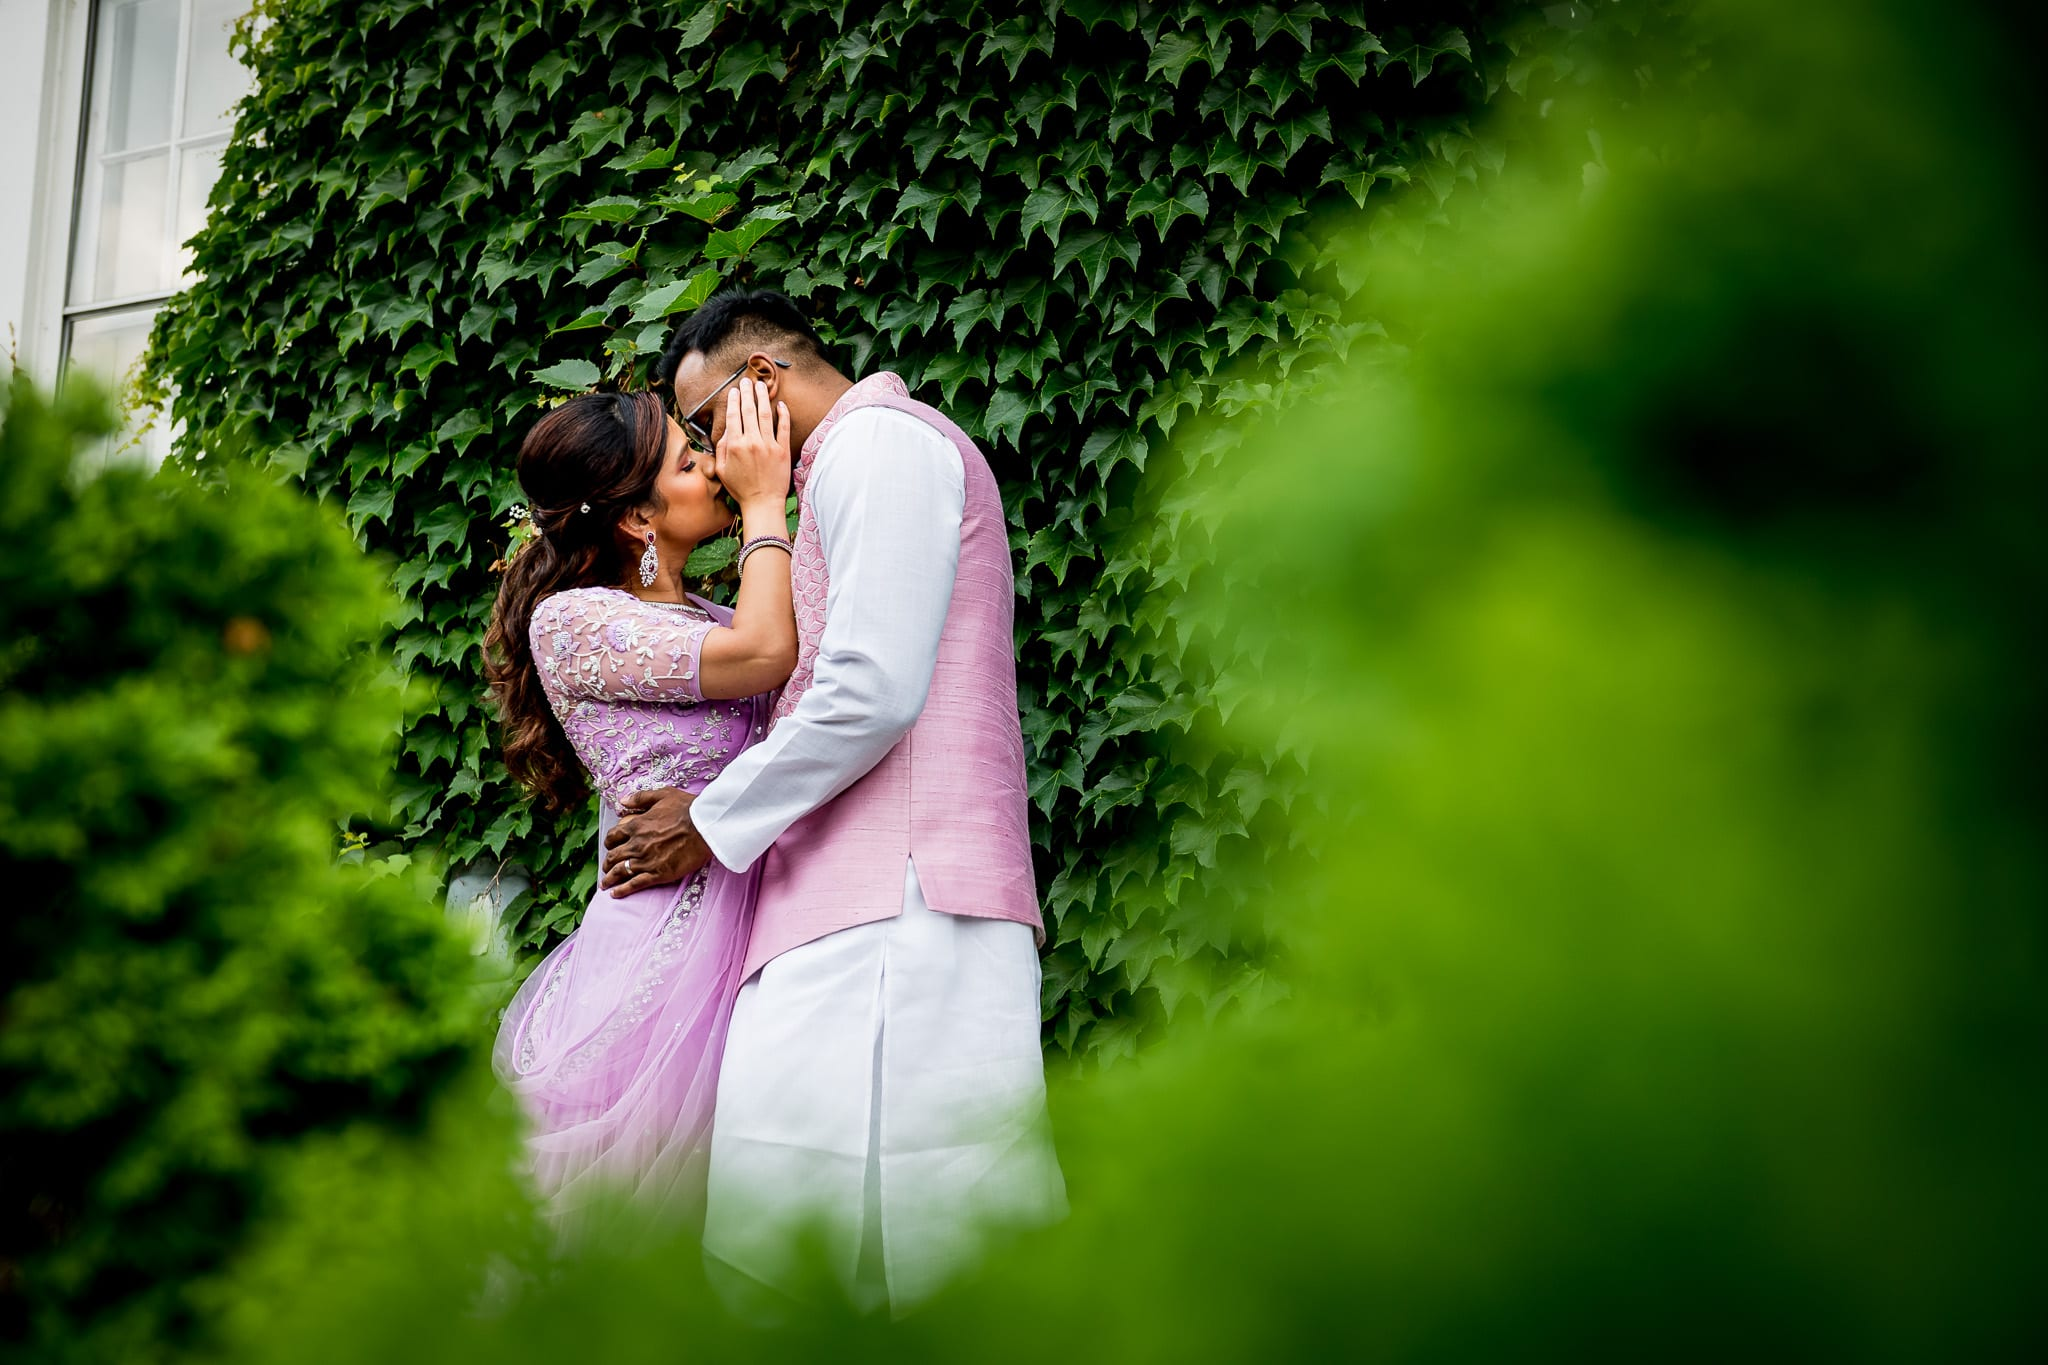 Traditionally dressed Indian couple share a kiss in front of the ivy wall at The Blaisdell during their wedding reception